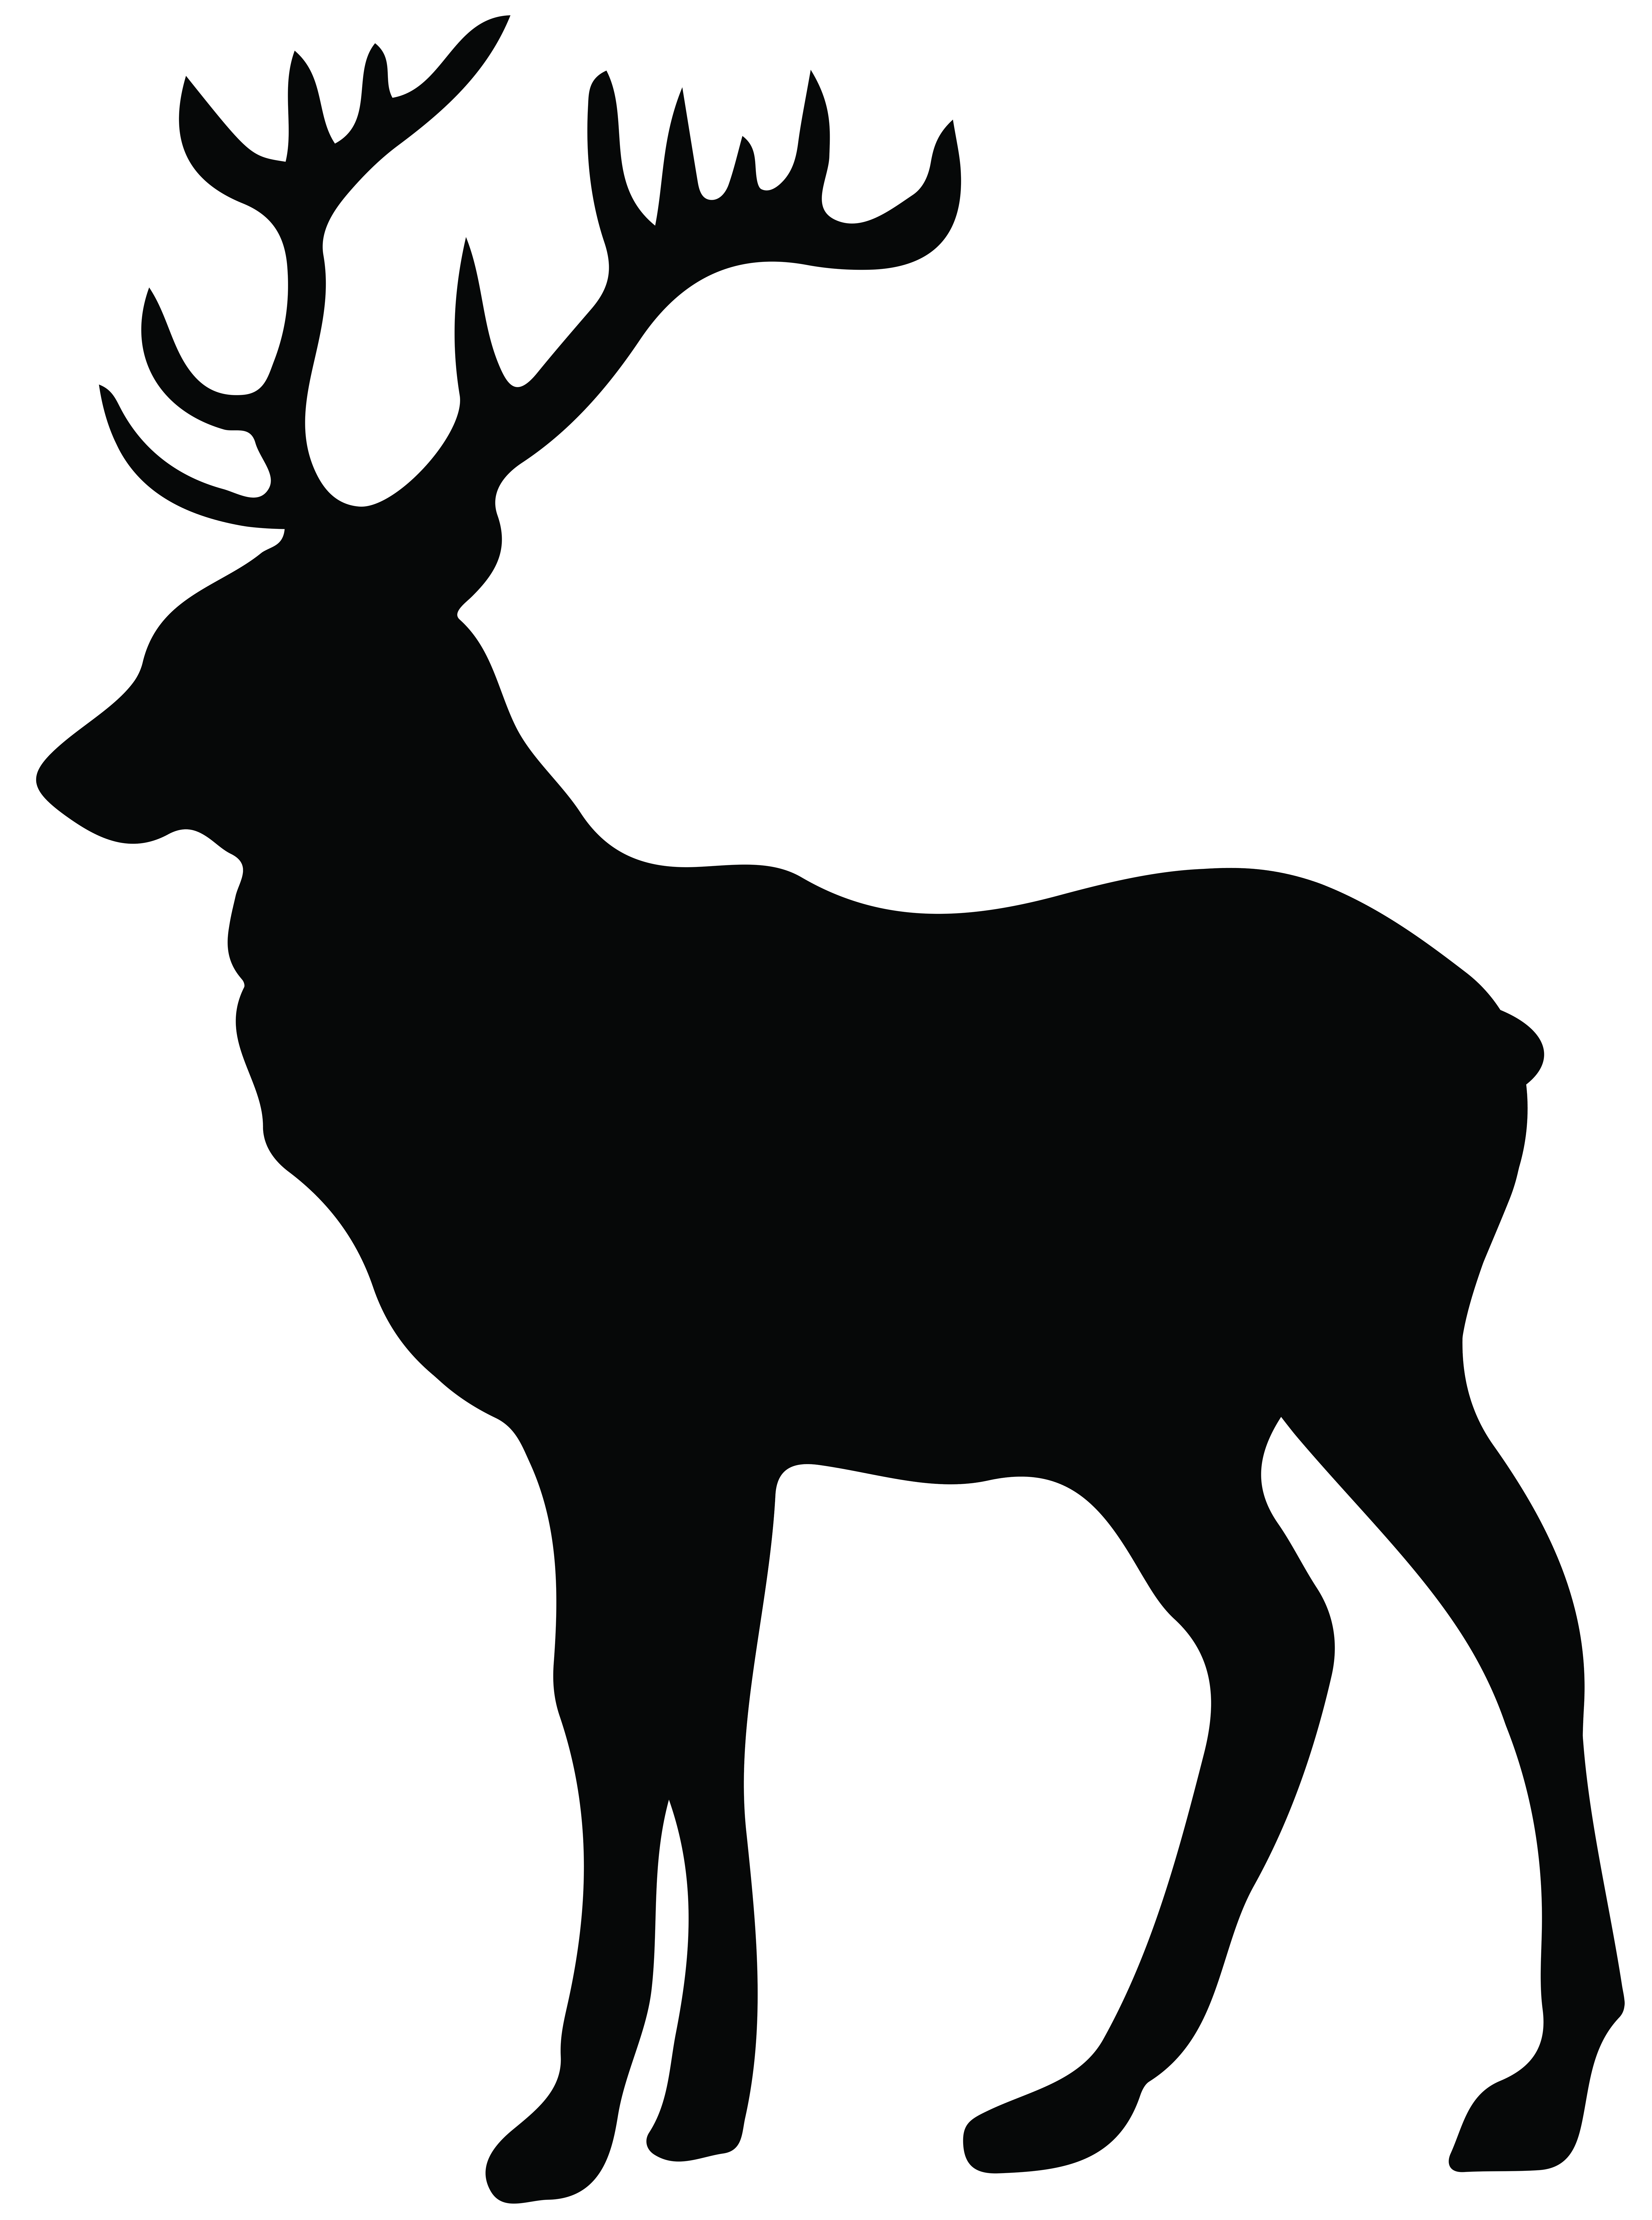 Stag transparent clip art. Deer antlers with bow silhouette png jpg free library